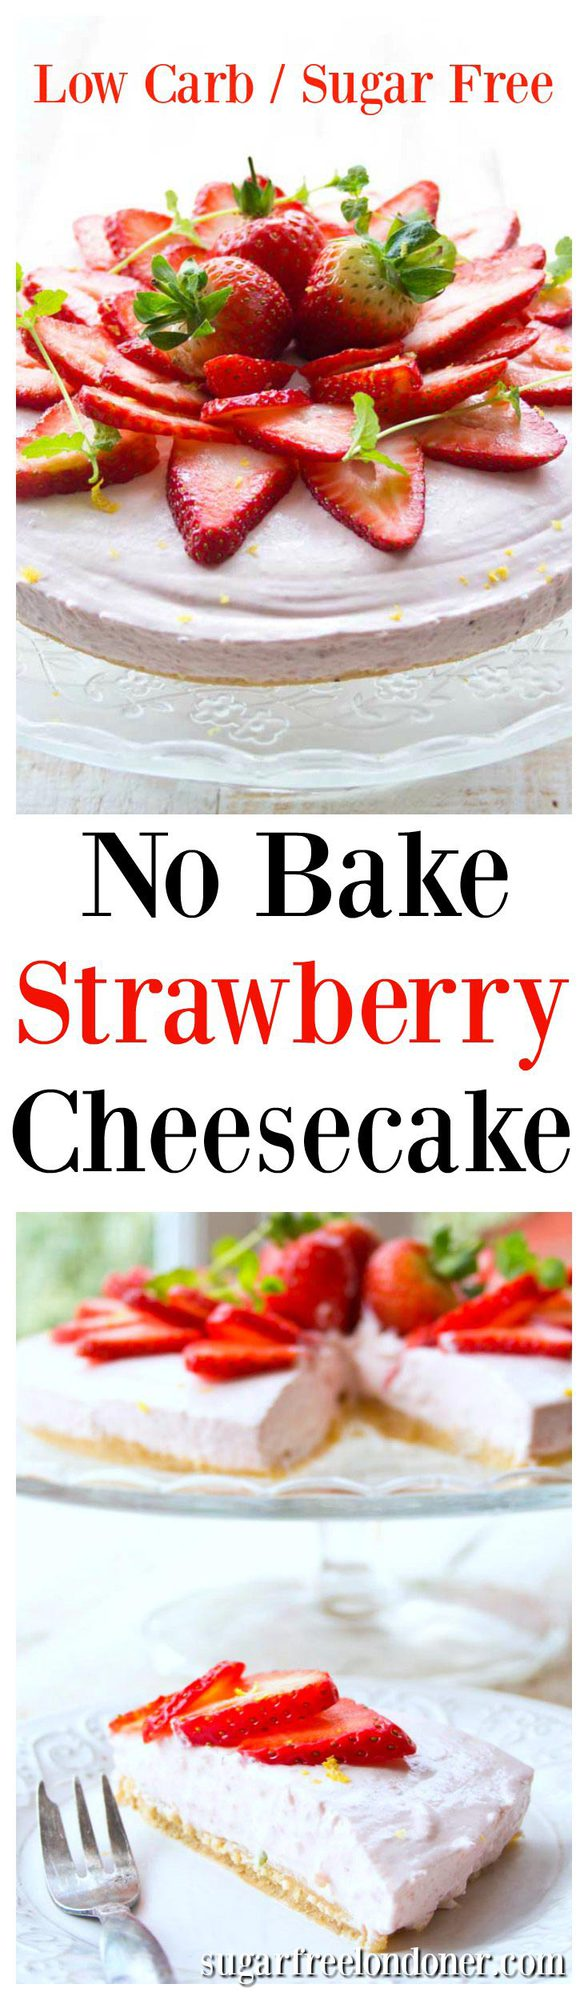 Give the oven a break with this fruity and easy no bake low carb strawberry cheesecake. It has an almond crust which also makes it gluten free.#lowcarb #cheesecake #sugarfree #strawberry